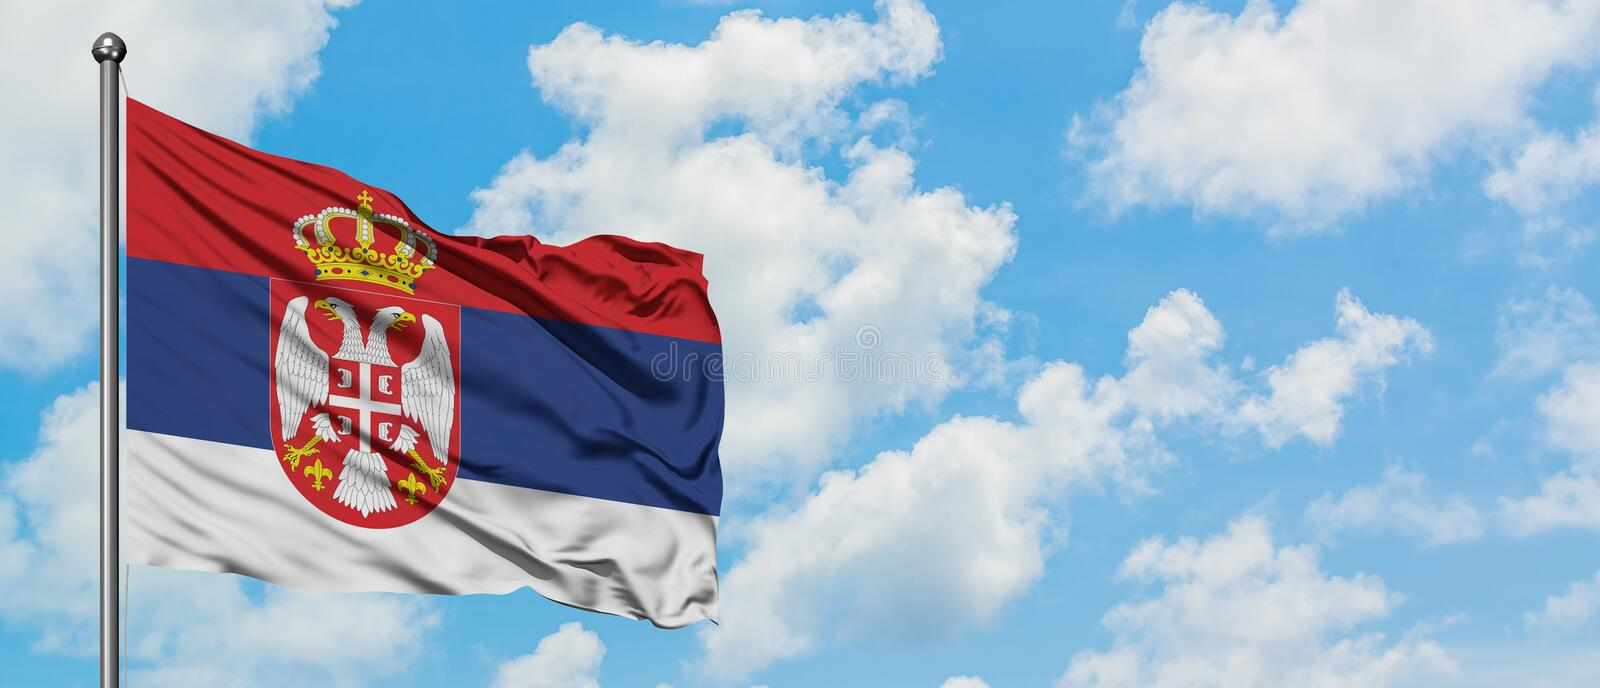 Serbia flag waving in the wind against white cloudy blue sky. Diplomacy concept, international relations.  royalty free stock images